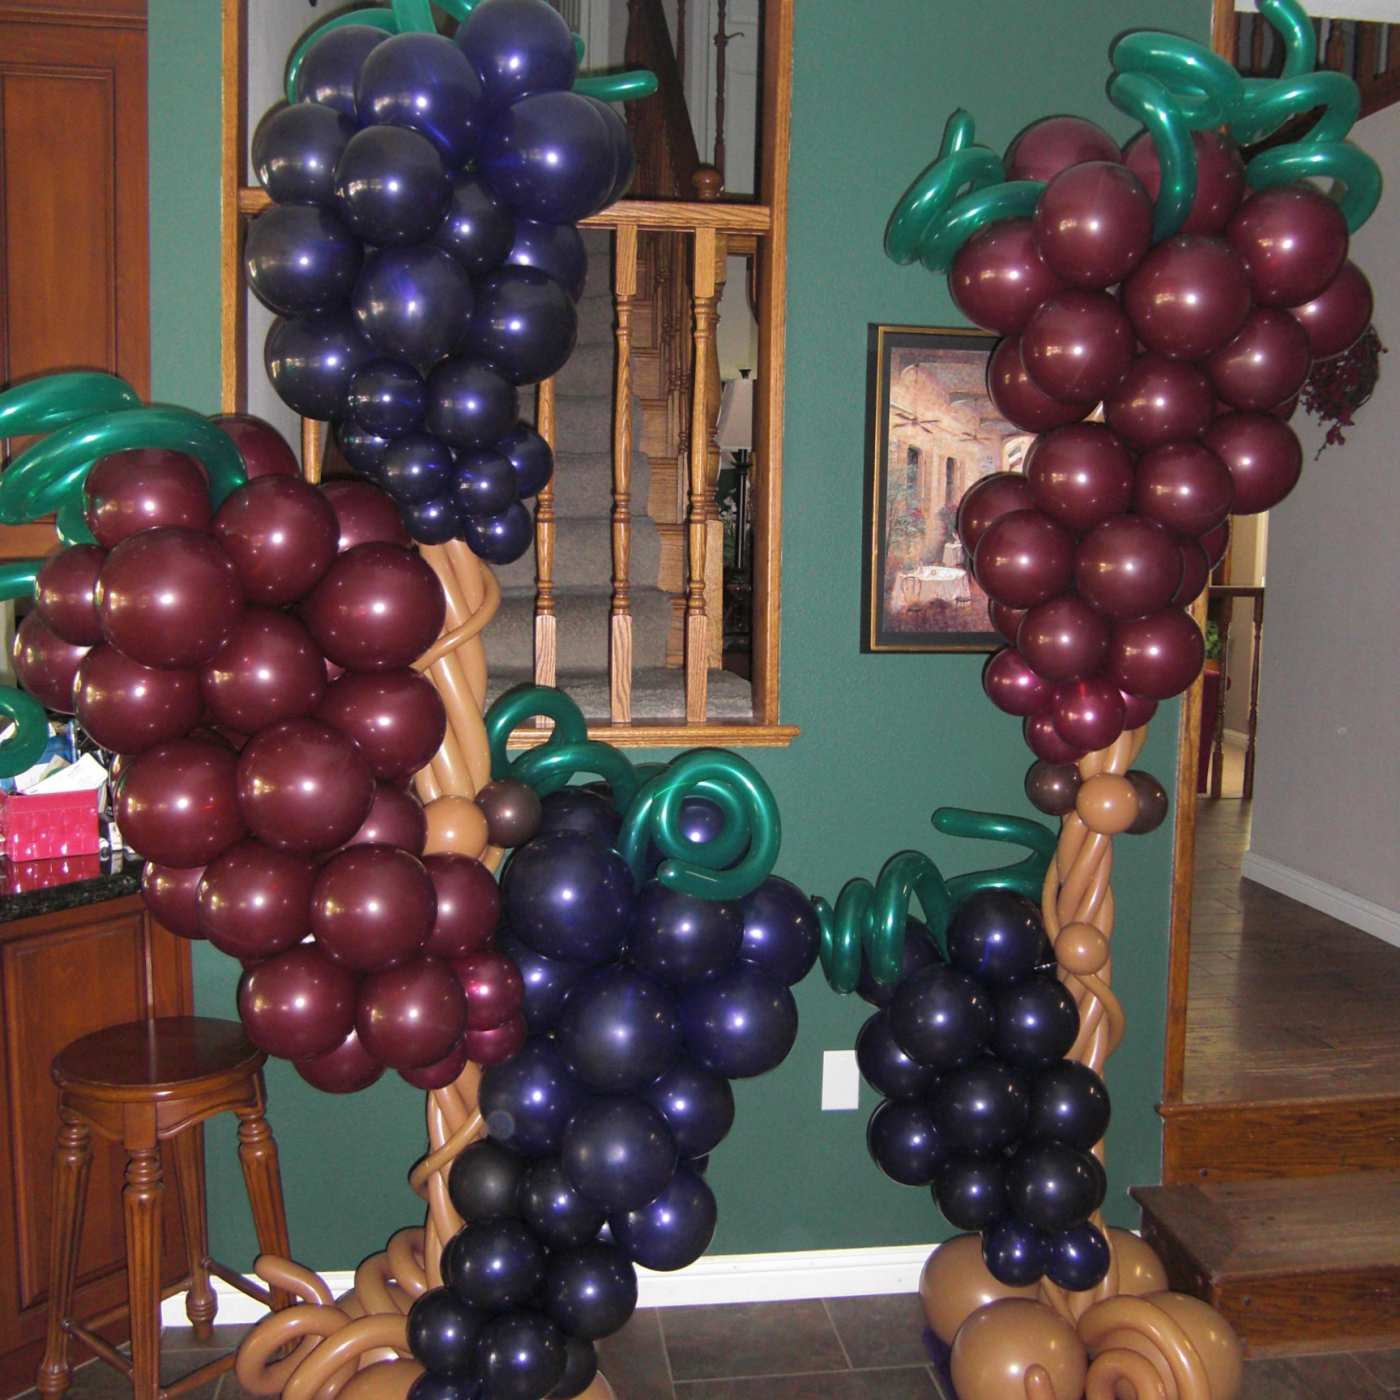 Grapes on a vine balloon sculpture